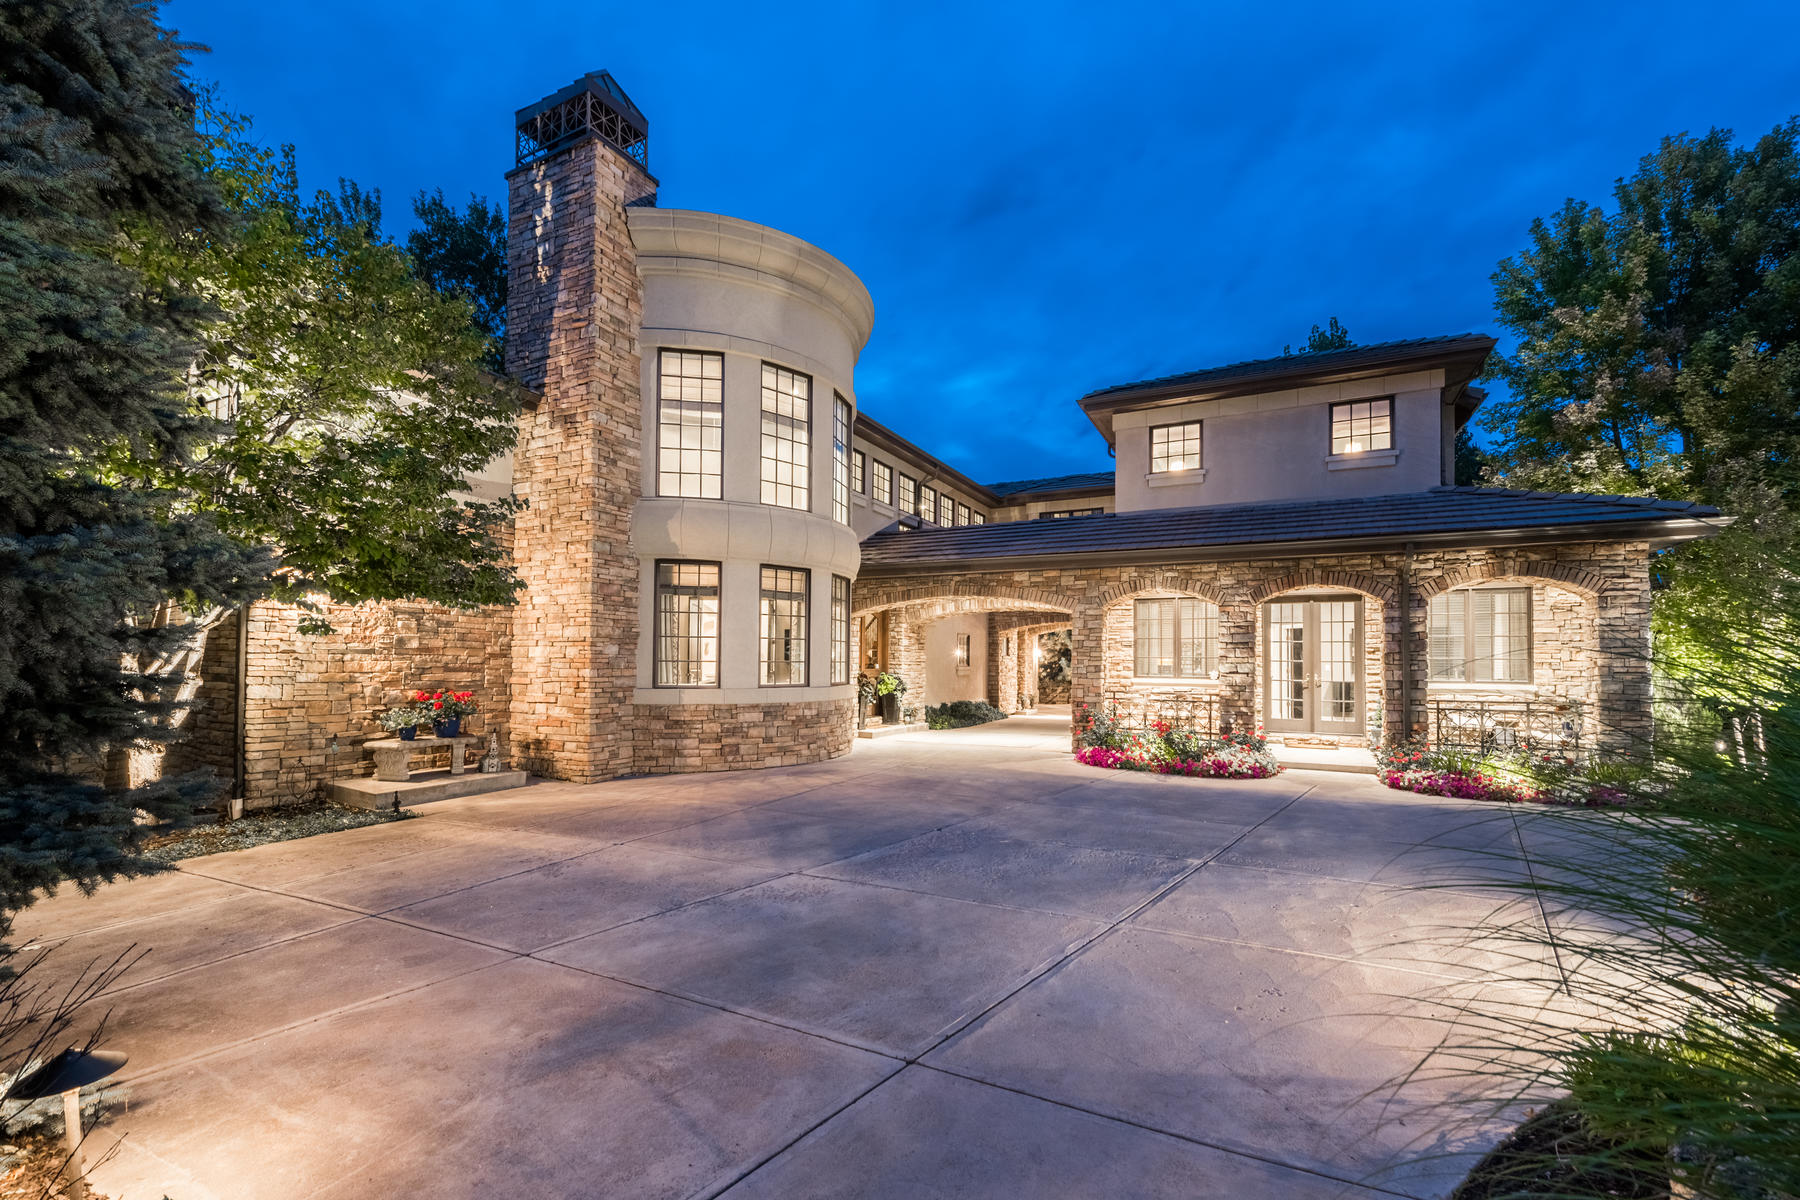 Property for Active at Nestled within the 24-hour guard gated community of Buell Mansion 1 Ravenswood Rd Cherry Hills Village, Colorado 80113 United States